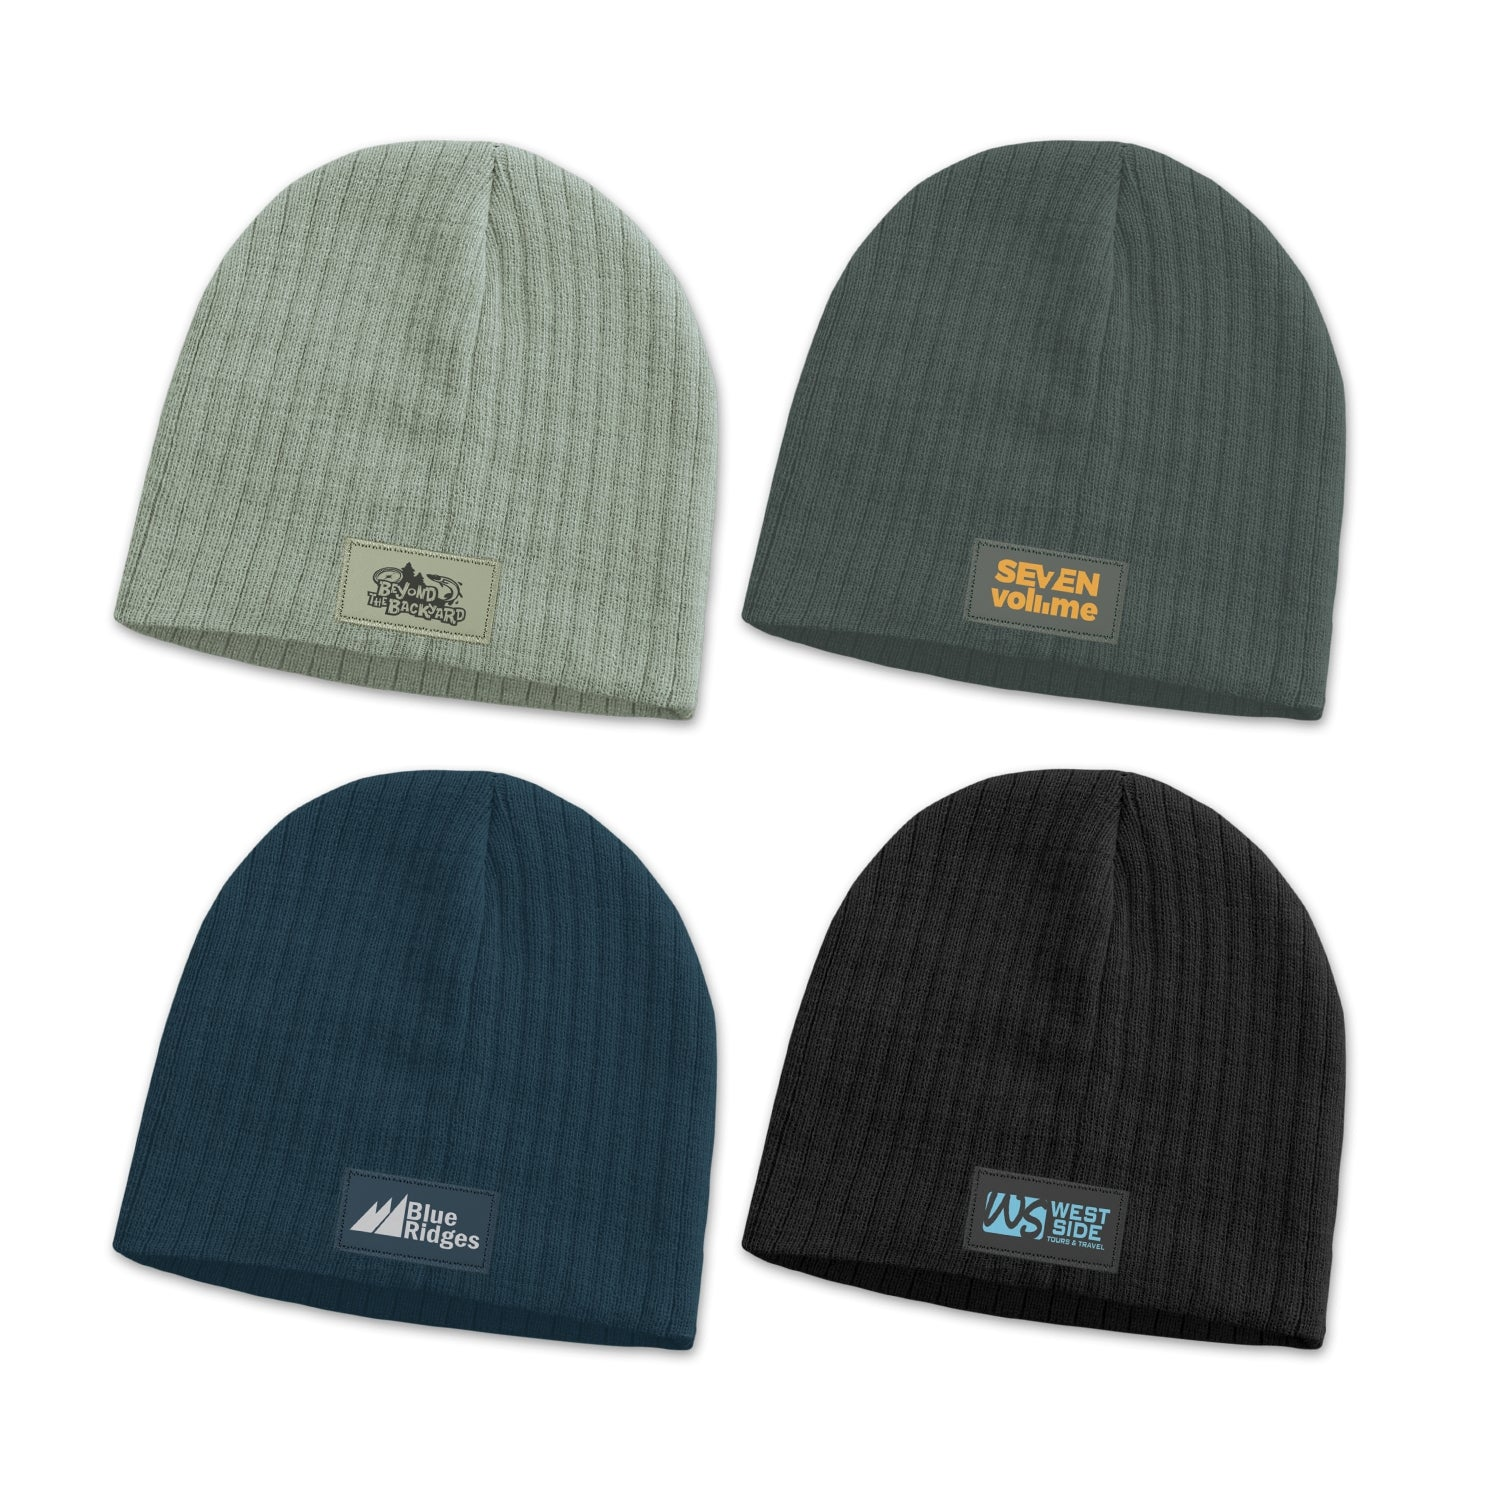 Cable Knit Beanie with Patch(SHW-26T) - greenpac.com.au